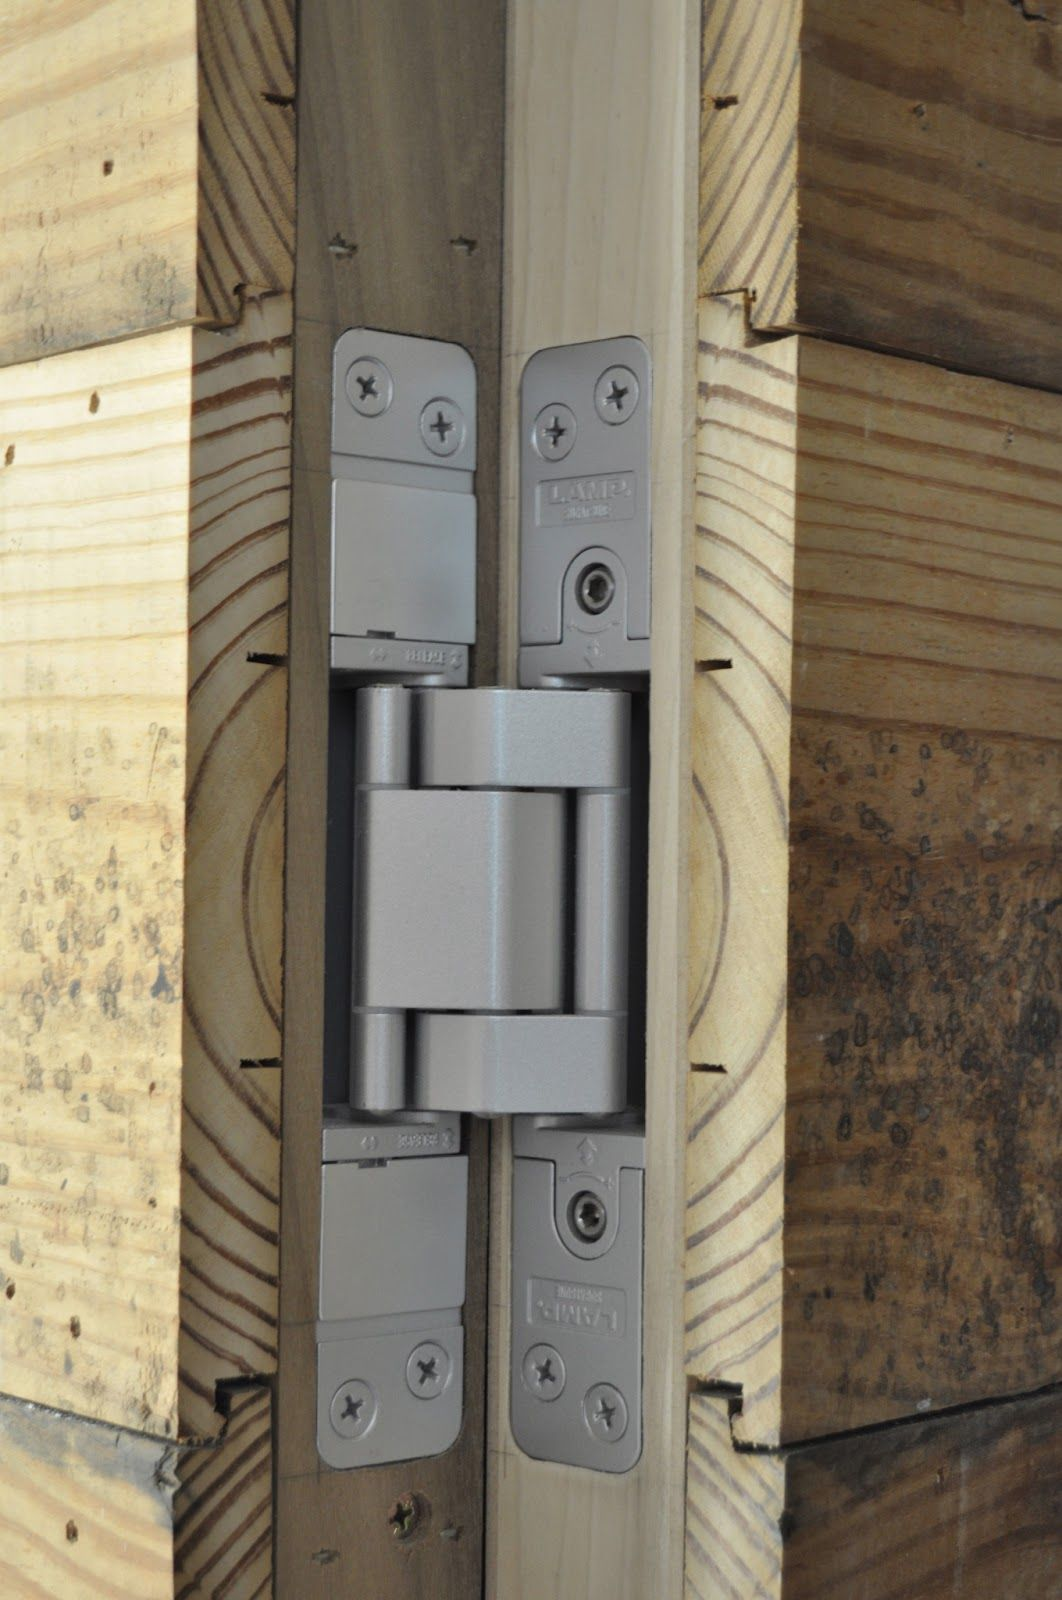 Concealed hinge types of hinges 10 most common designs today bob - Sugatsune Three Way Adjustable Hinges For Hidden Doors